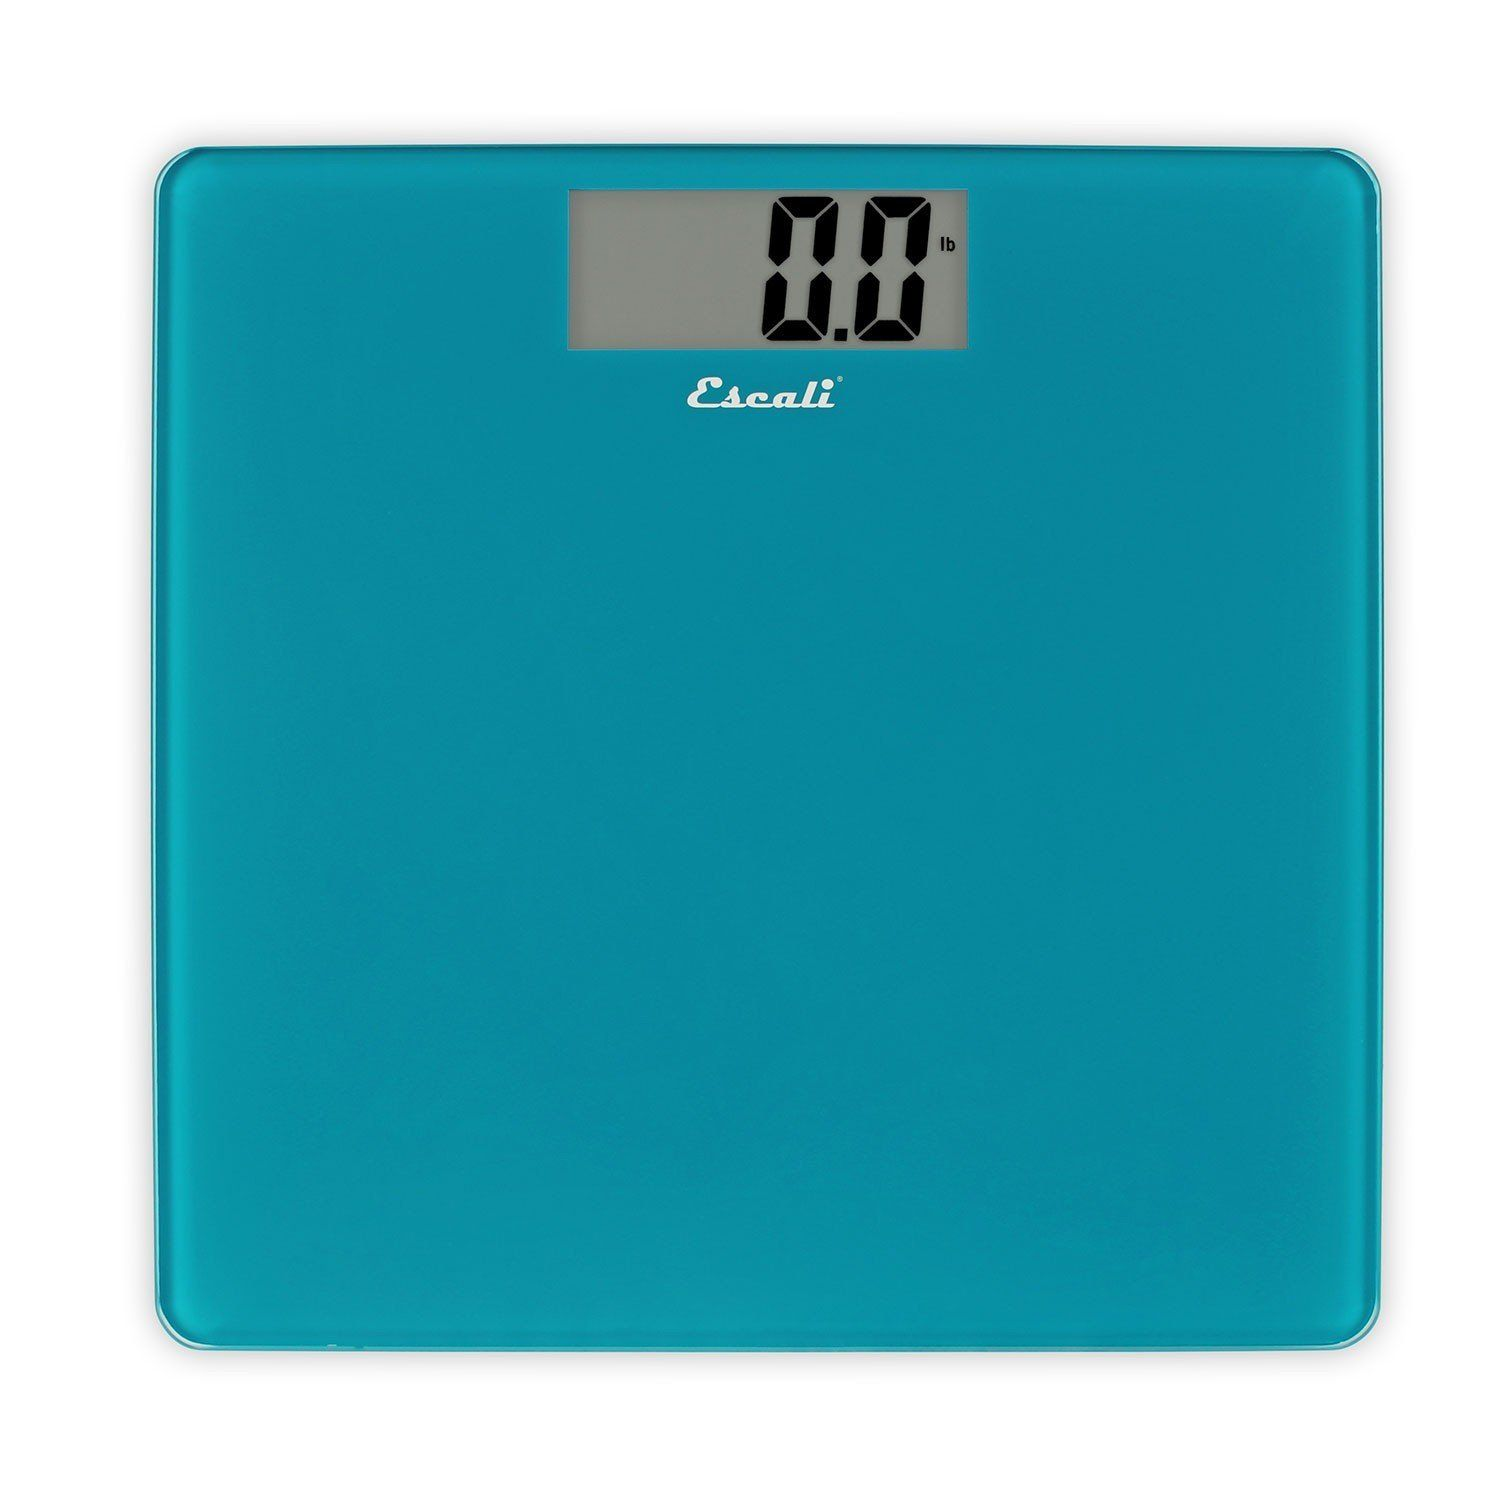 Escali Glass Body Scale Escali Body Scale Digital Scale Bathroom